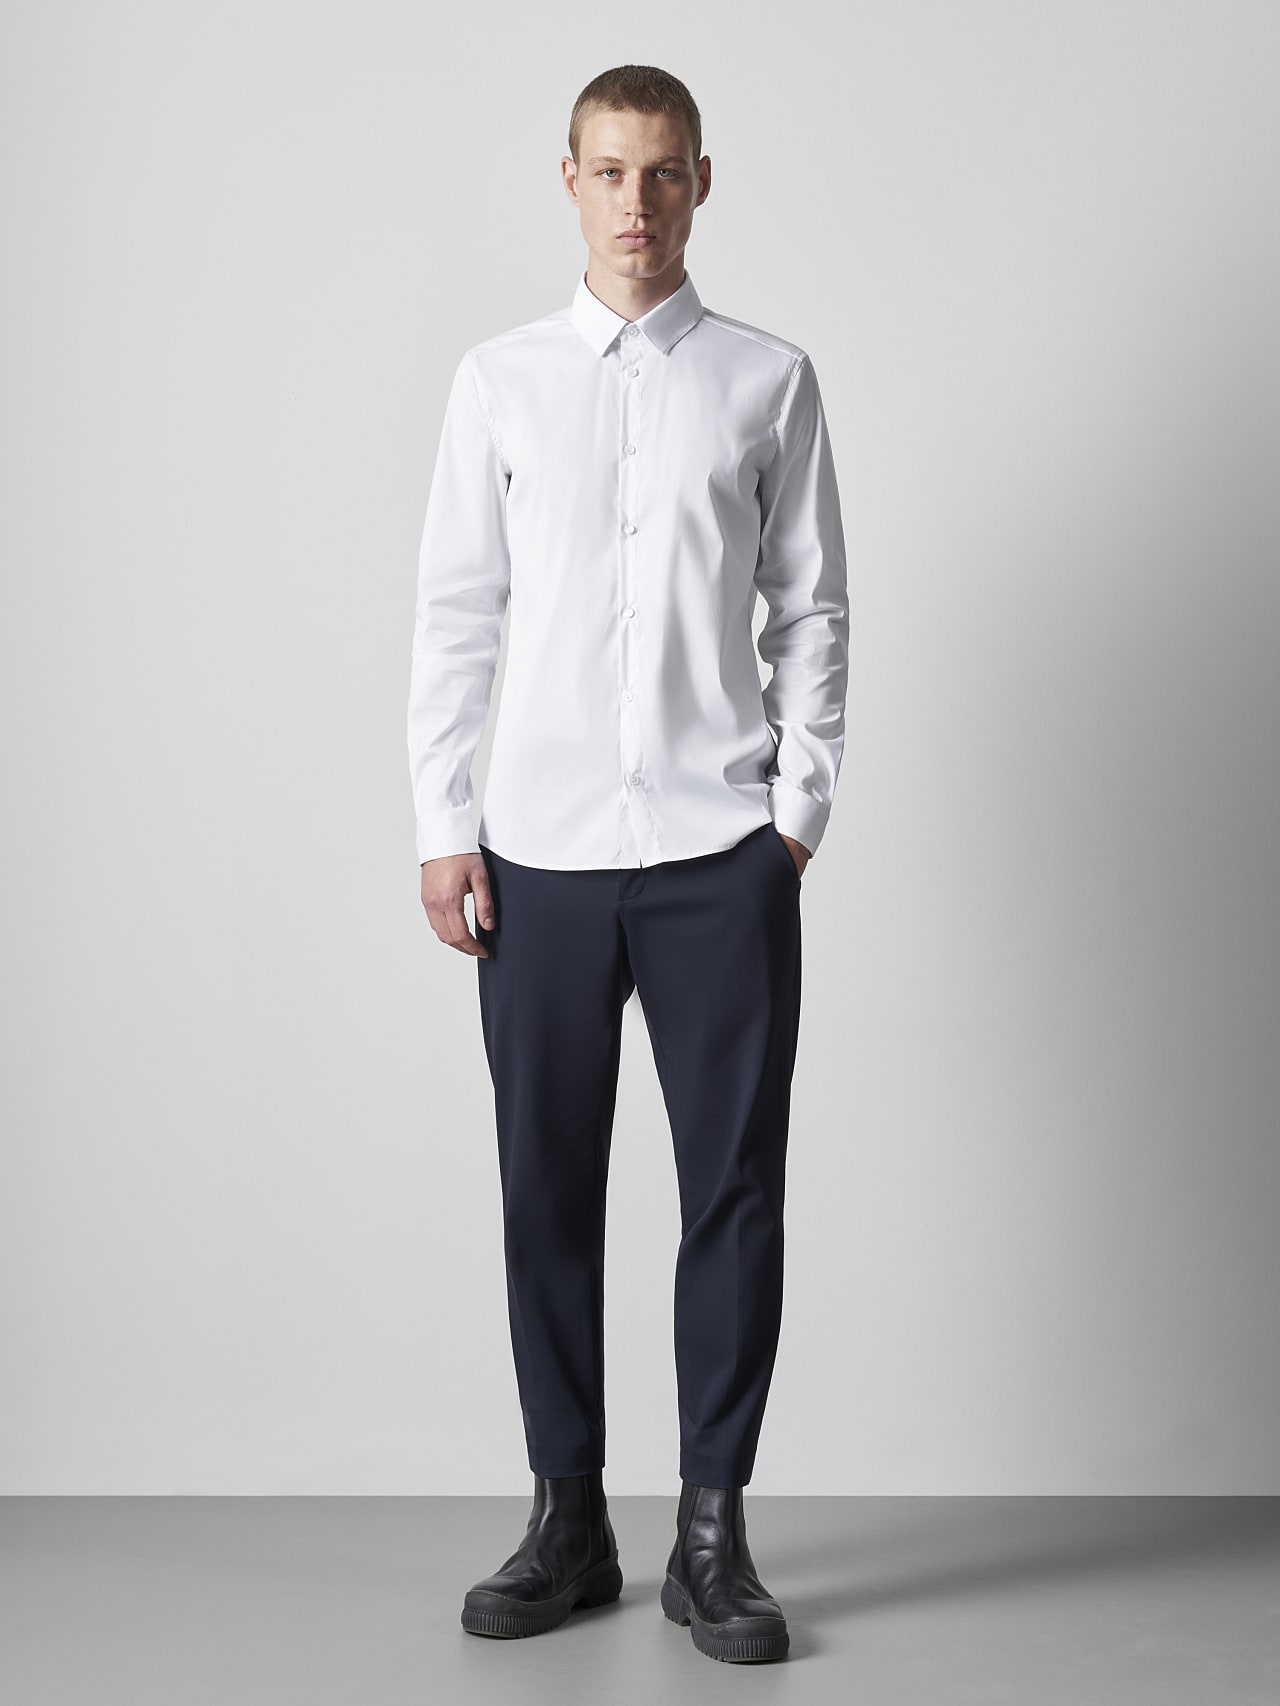 WAARG V2.Y5.02 Easy-Care Cotton Shirt white Front Alpha Tauri